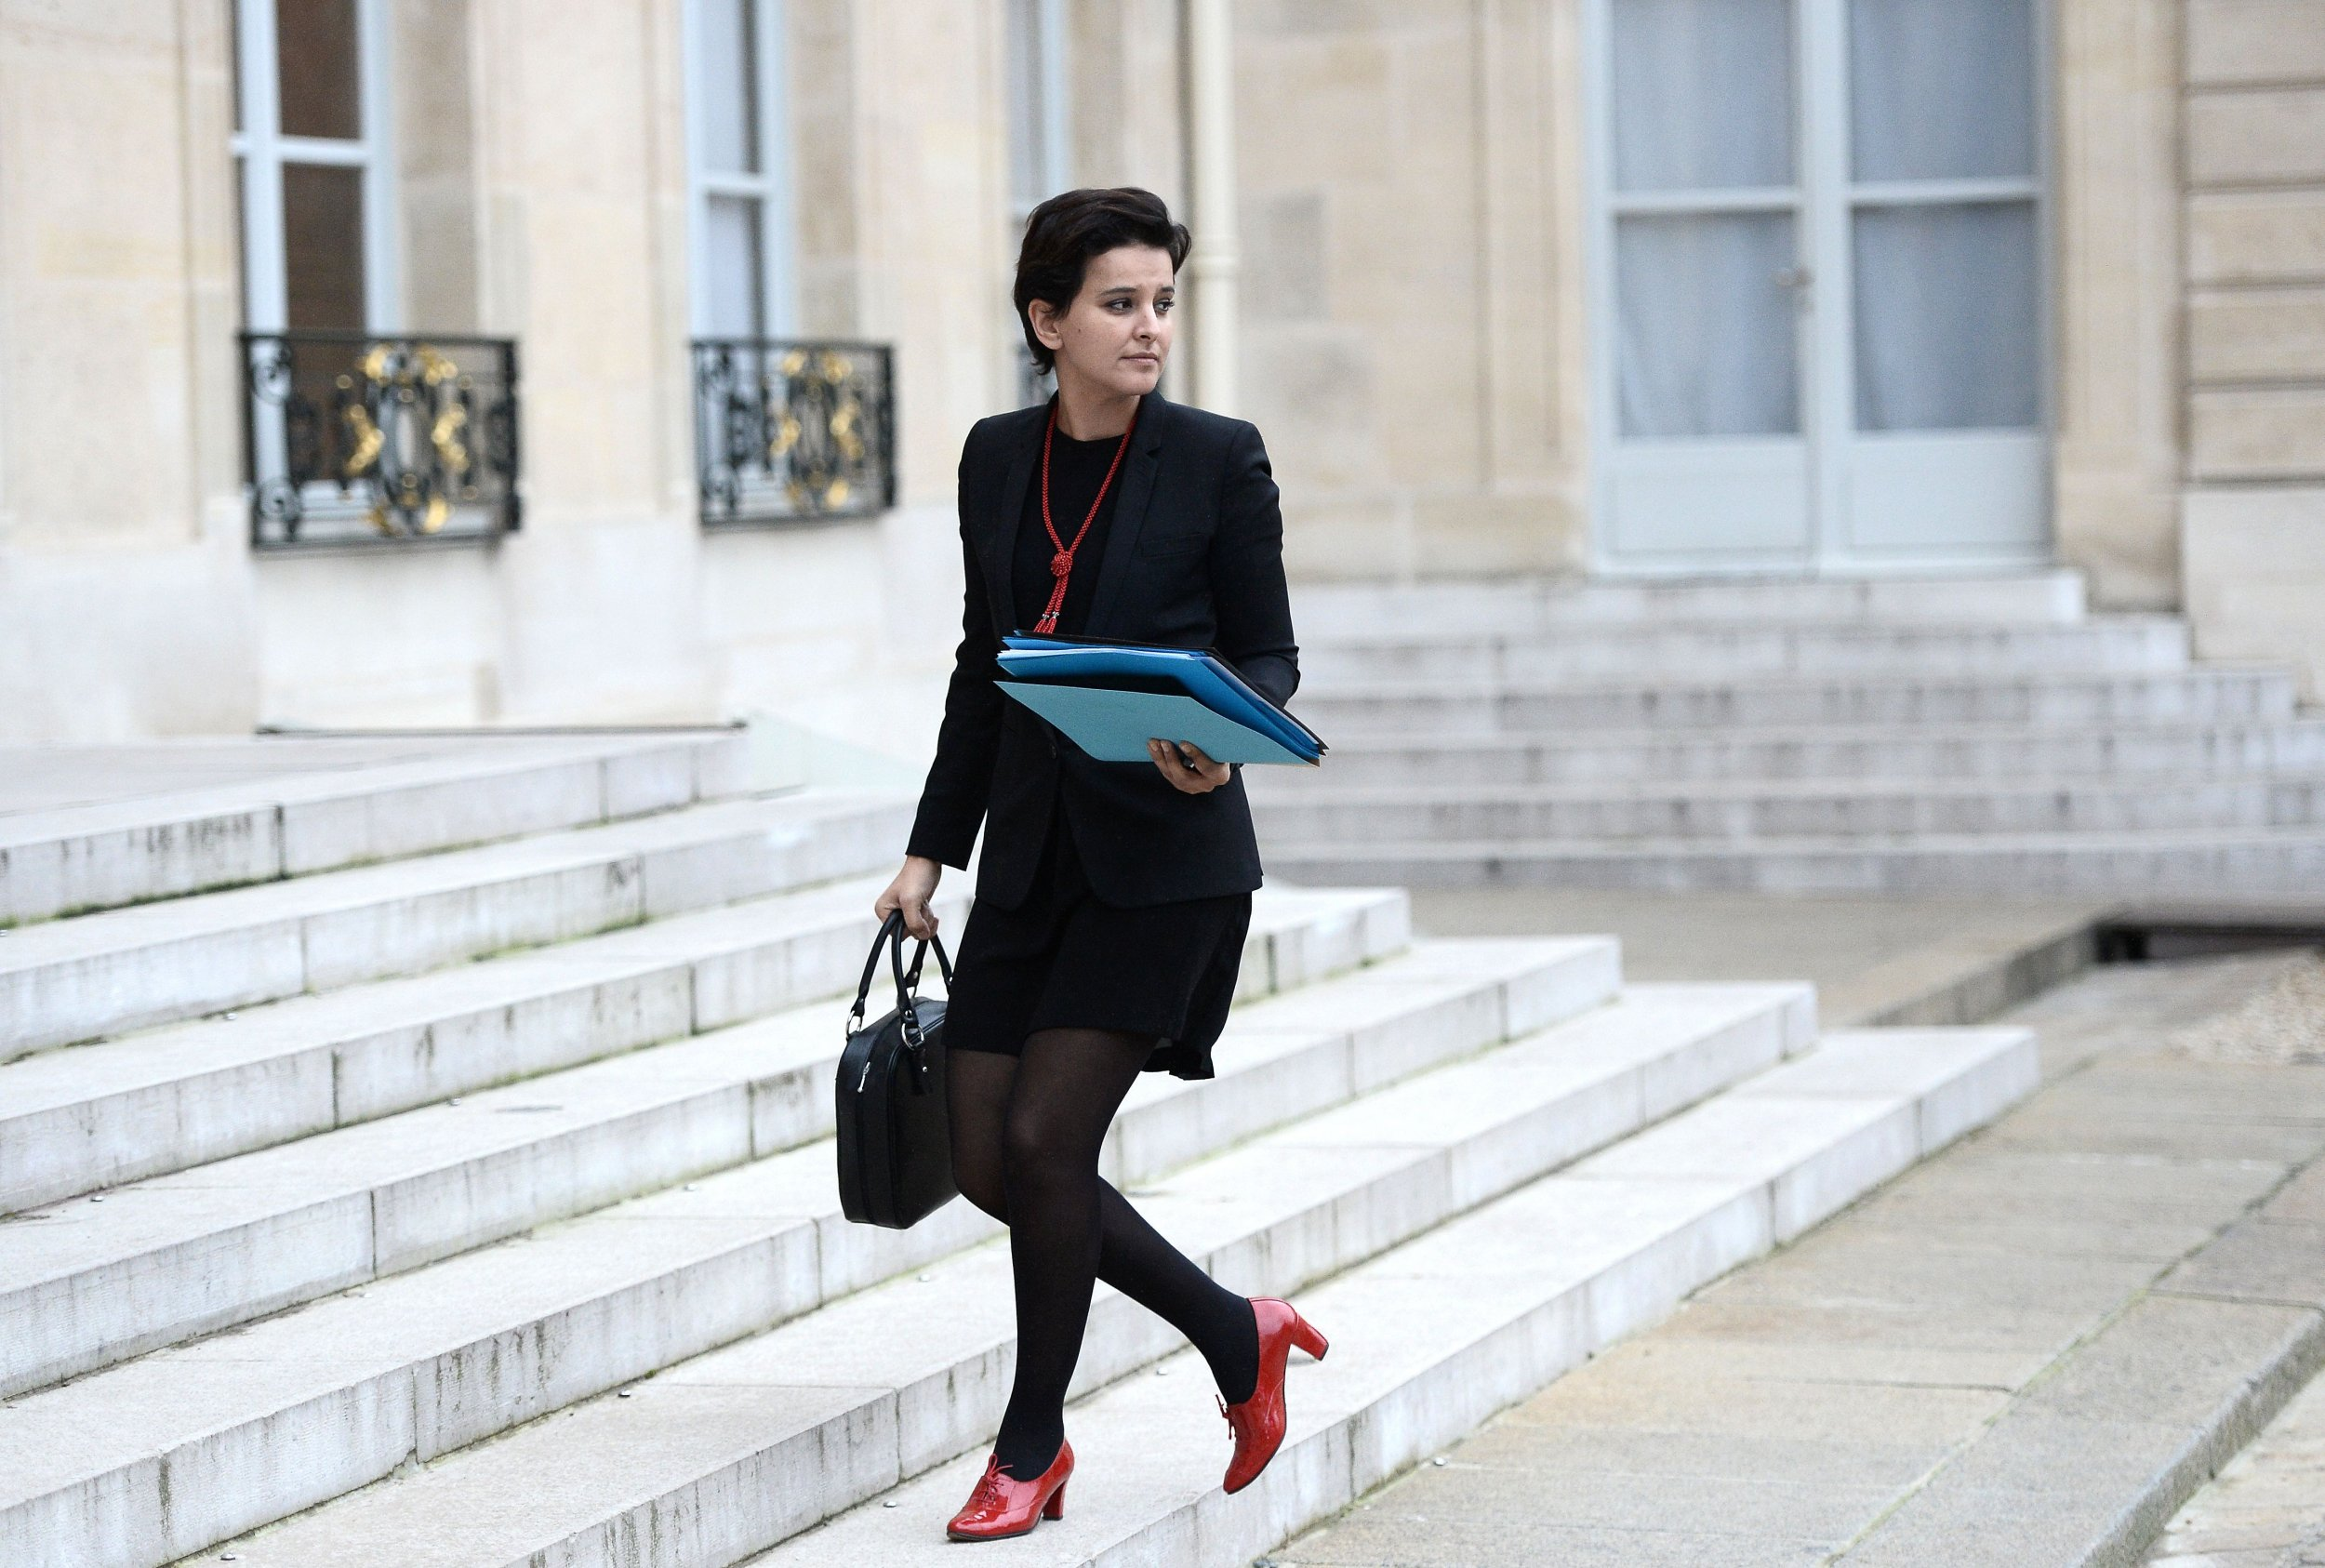 Najat Vallaud-Belkacem, French education minister, arrives at the Elysee Presidential Palace.